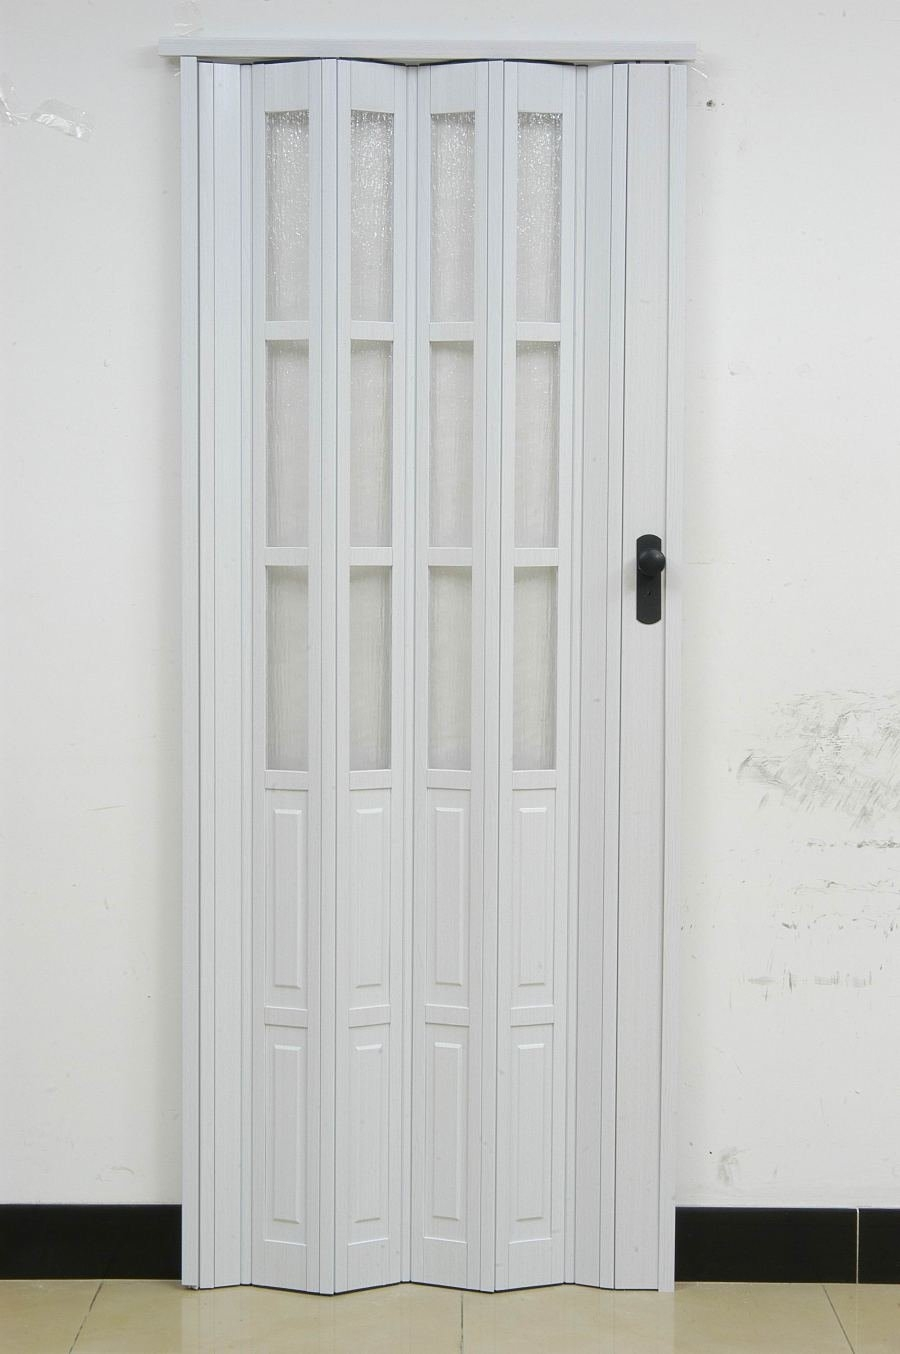 Pvc Accordion Door For Bathroom